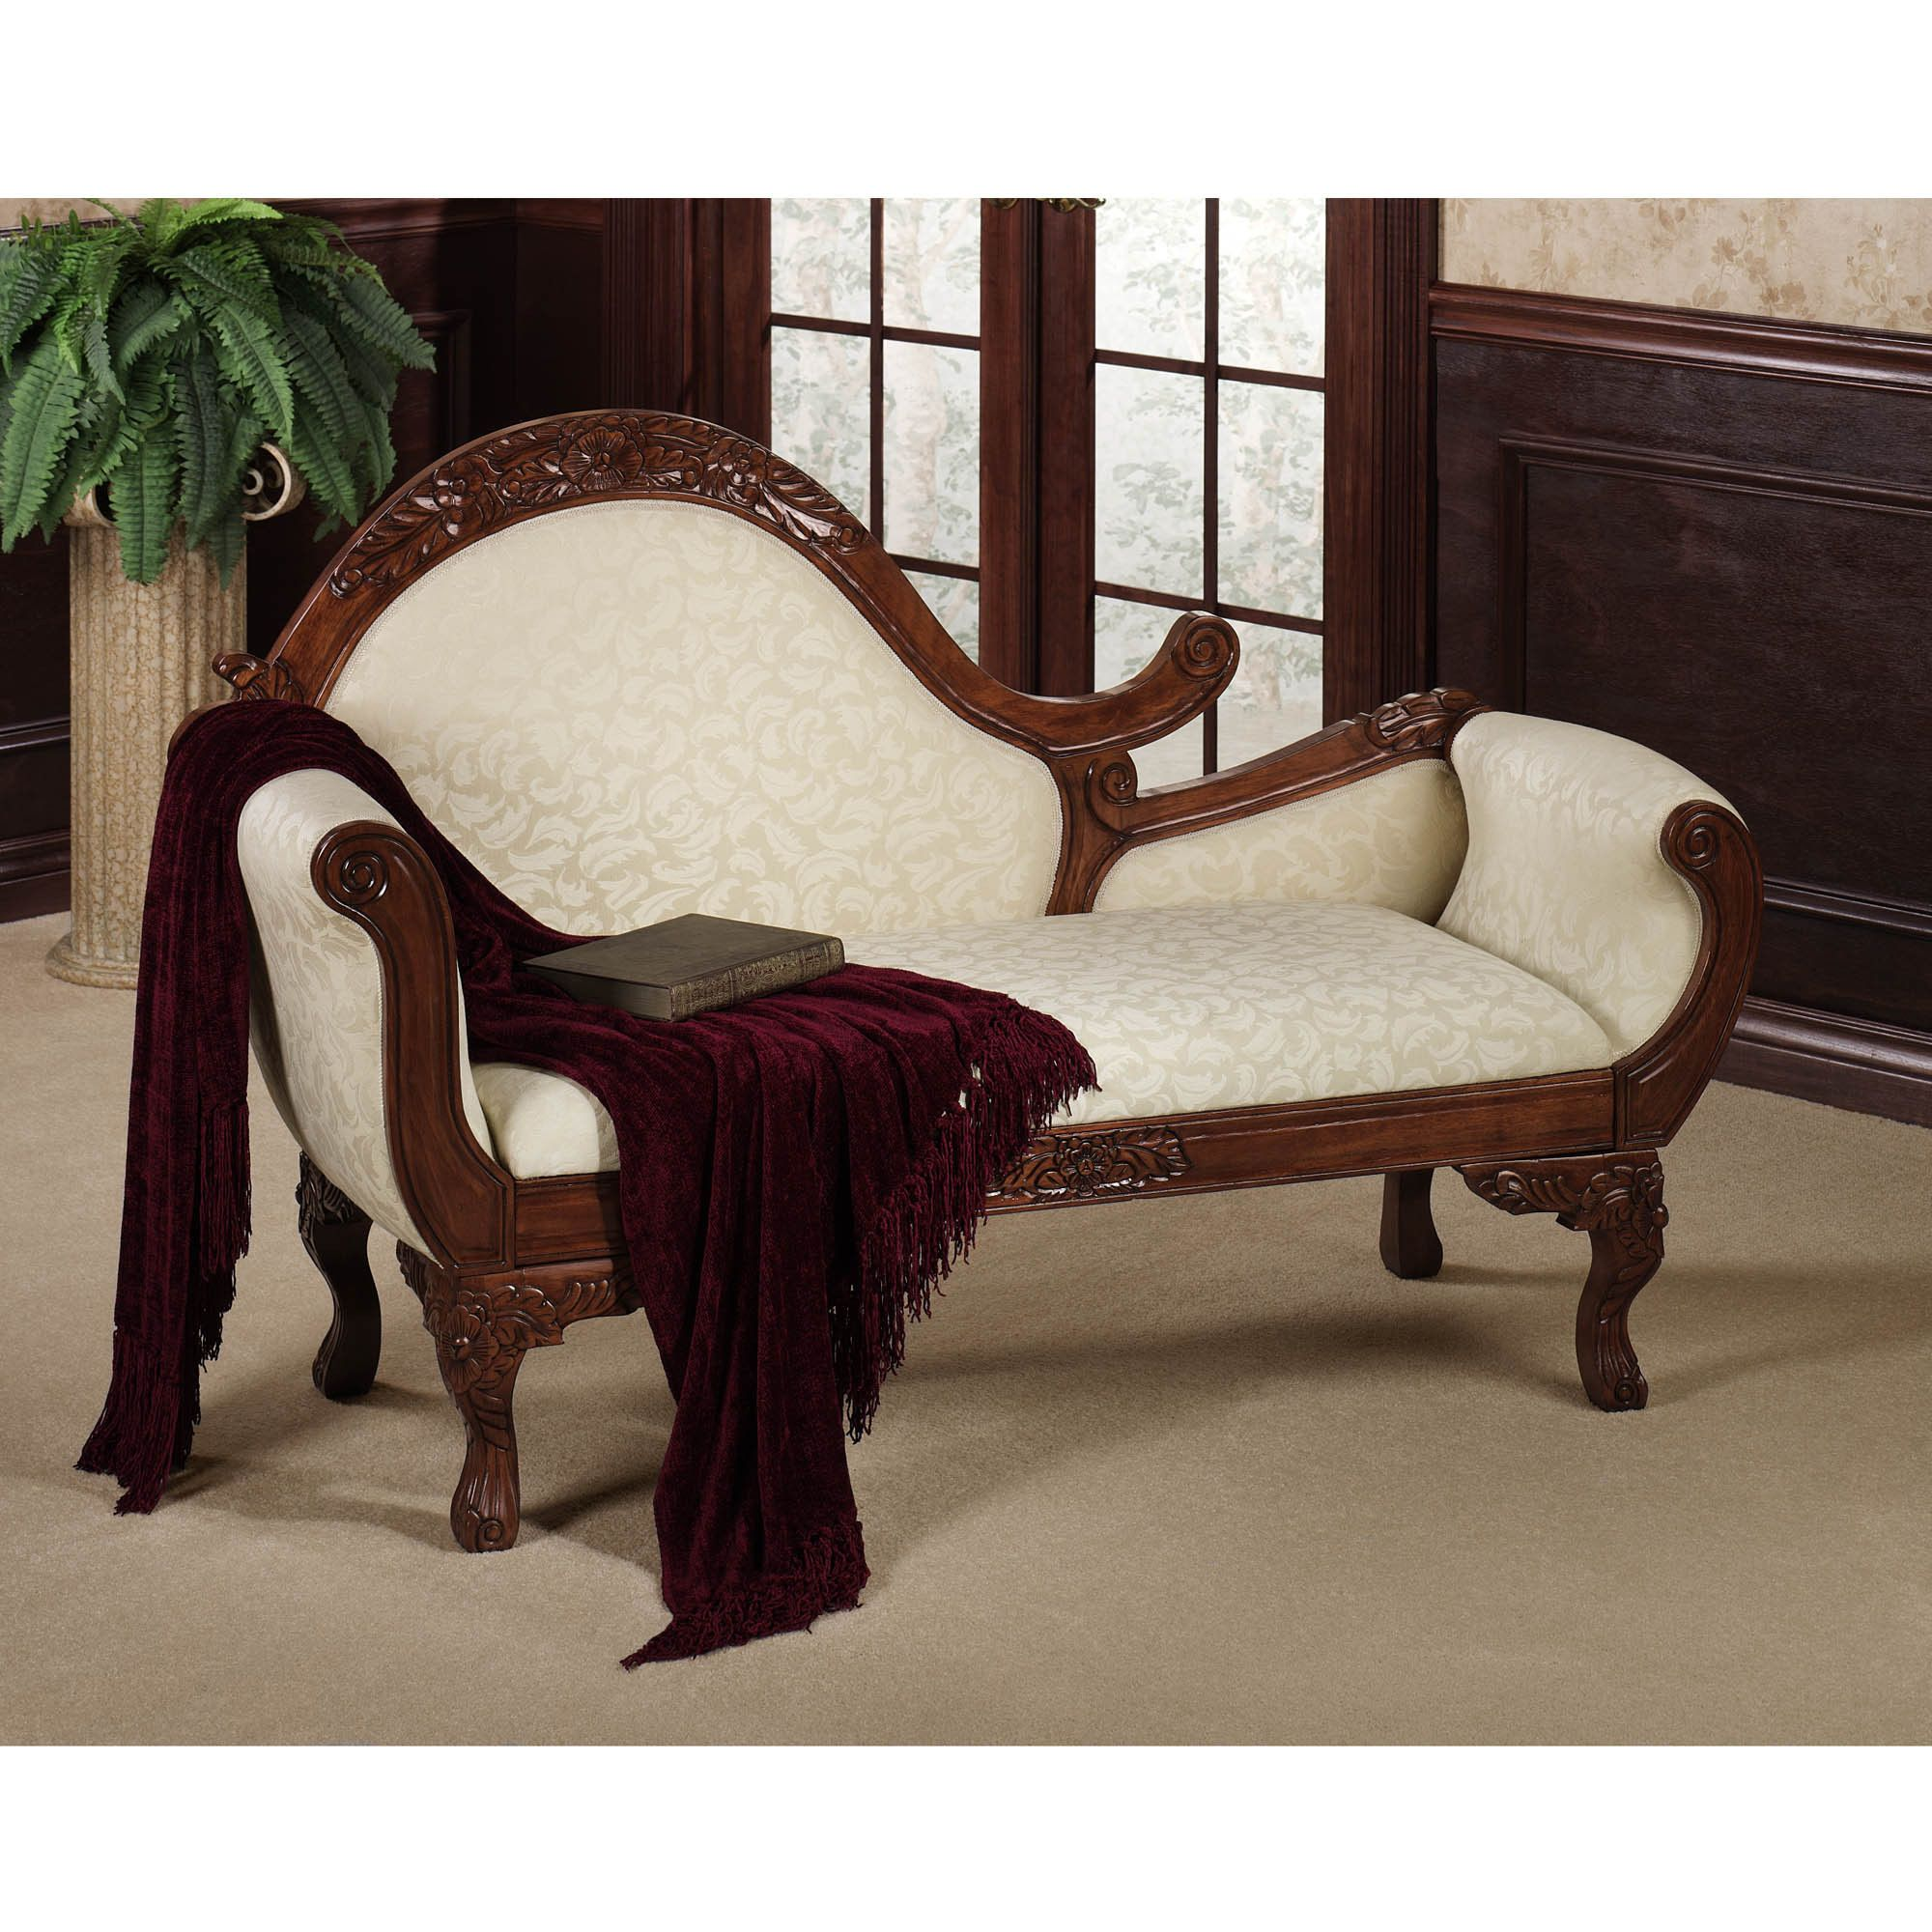 Victoriana Chaise Lounge Chair. Victorian ...